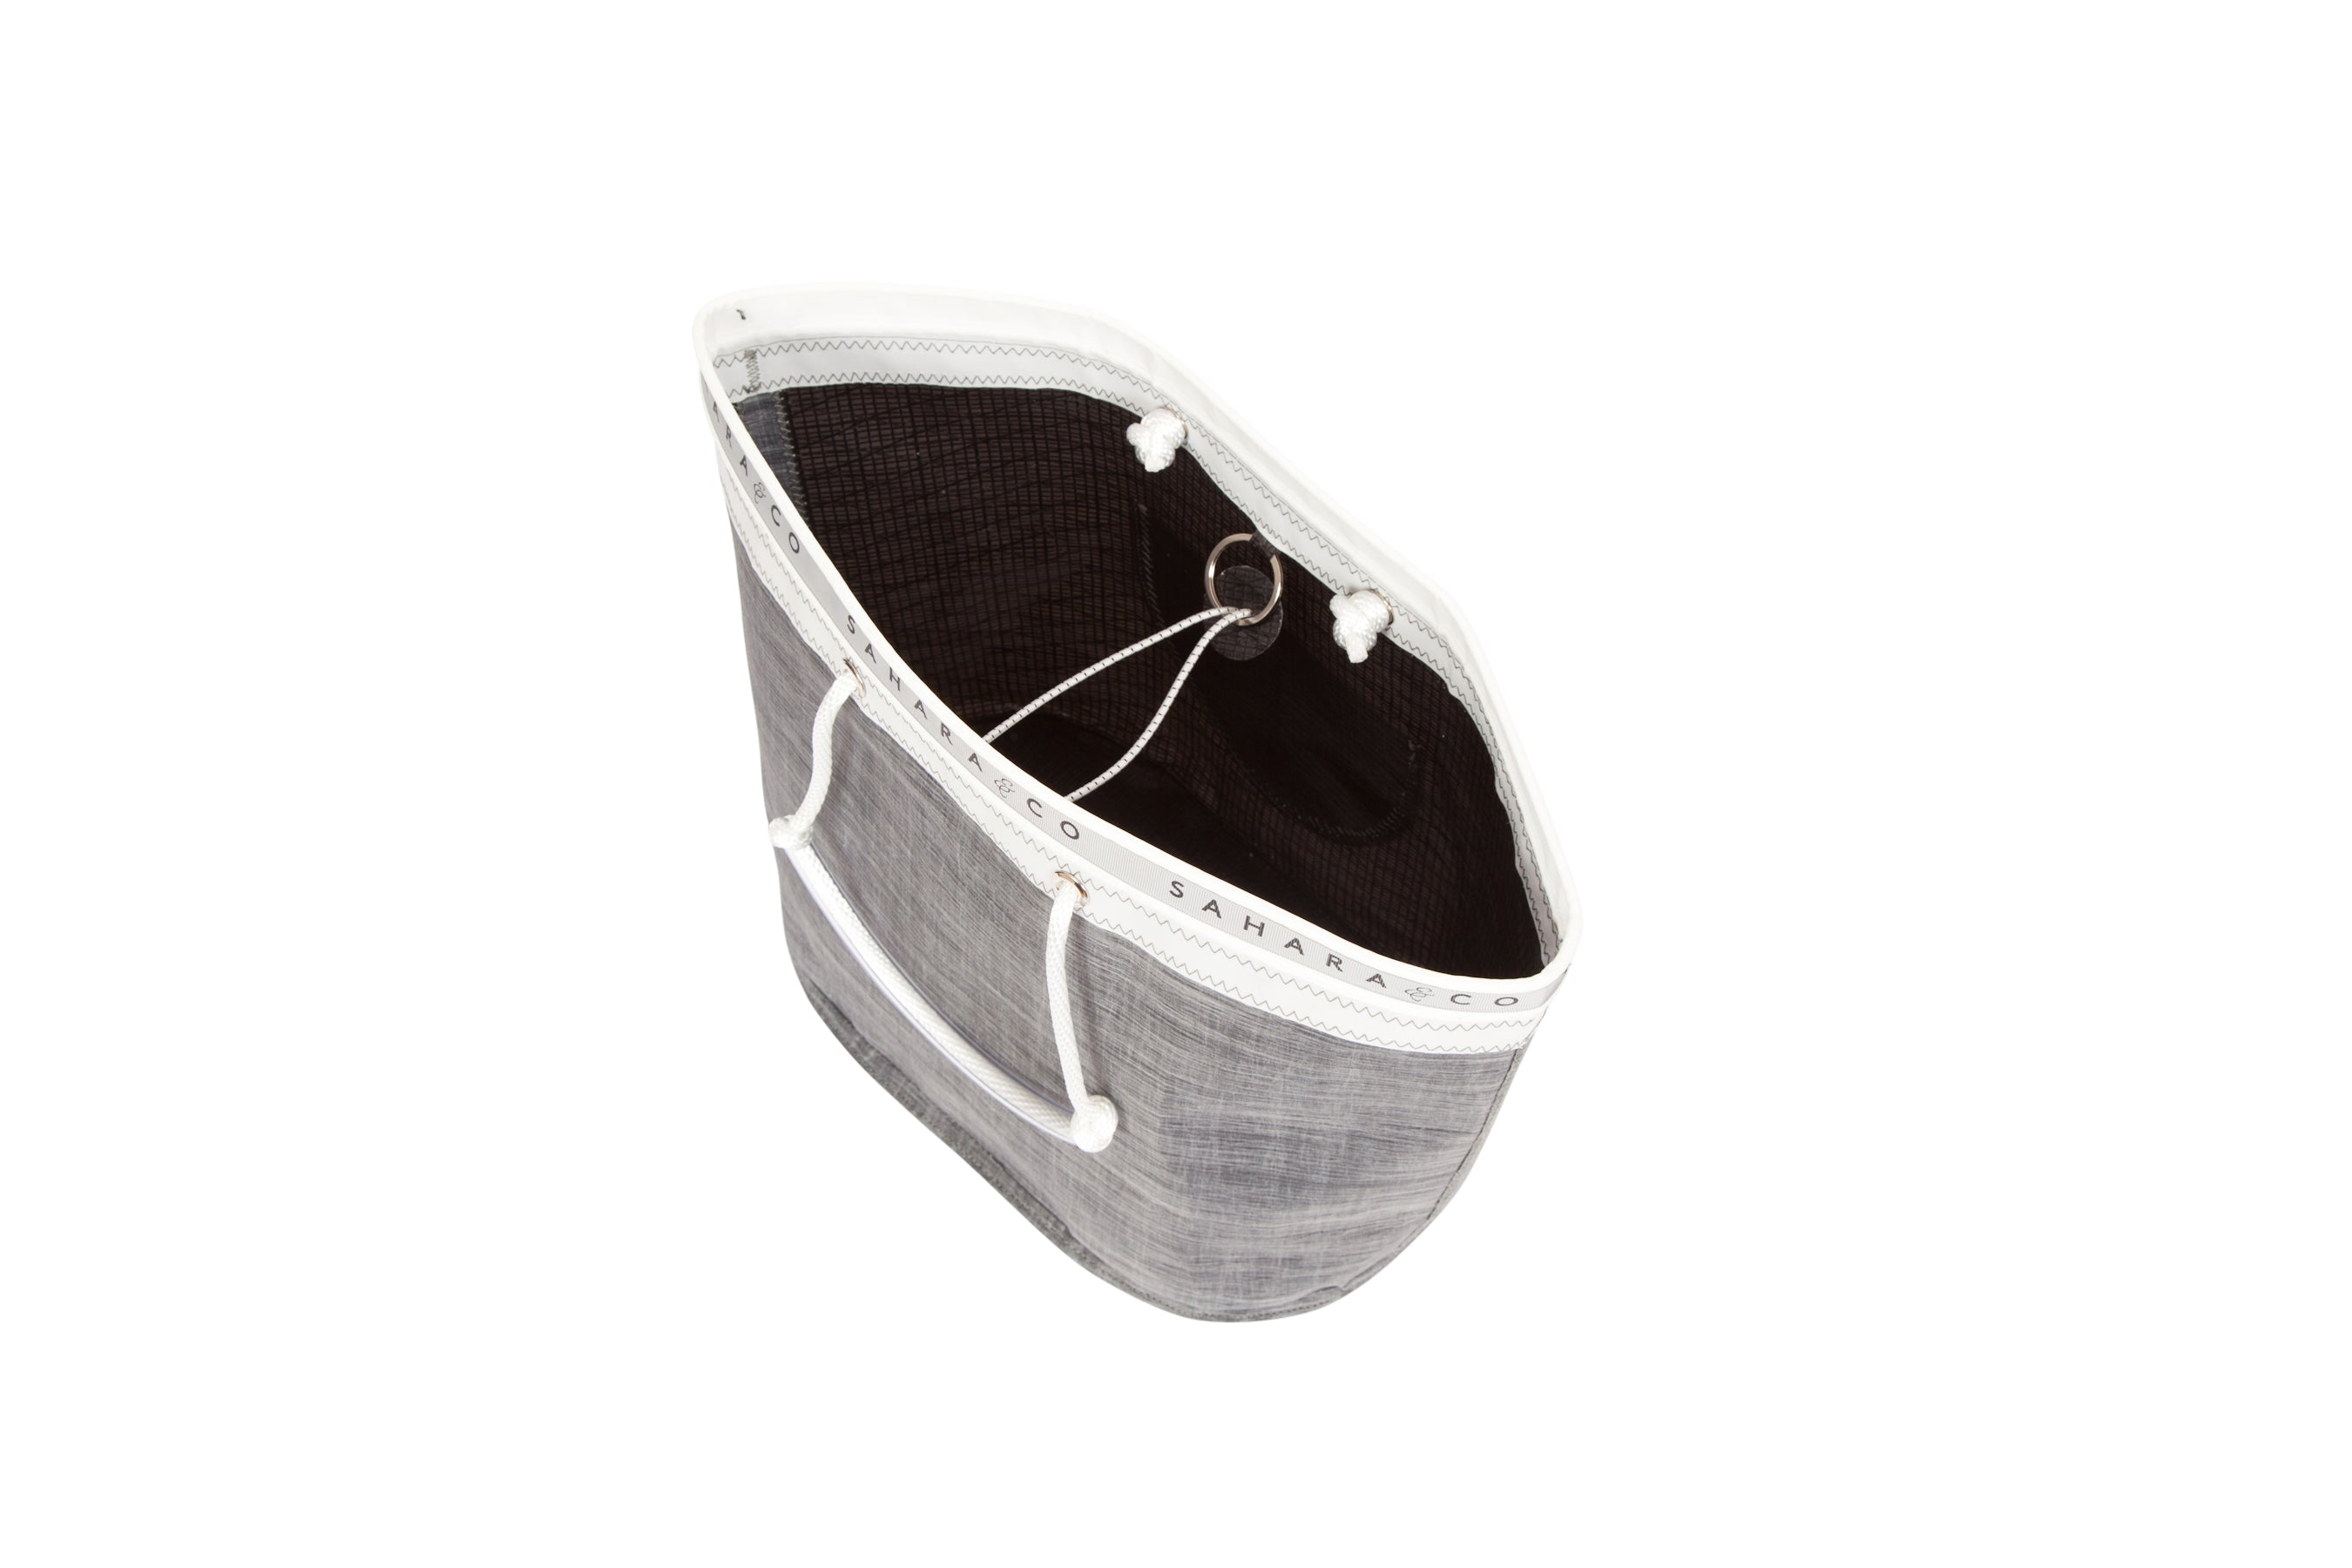 Kinsale Catchall Bag - Sahara and Co